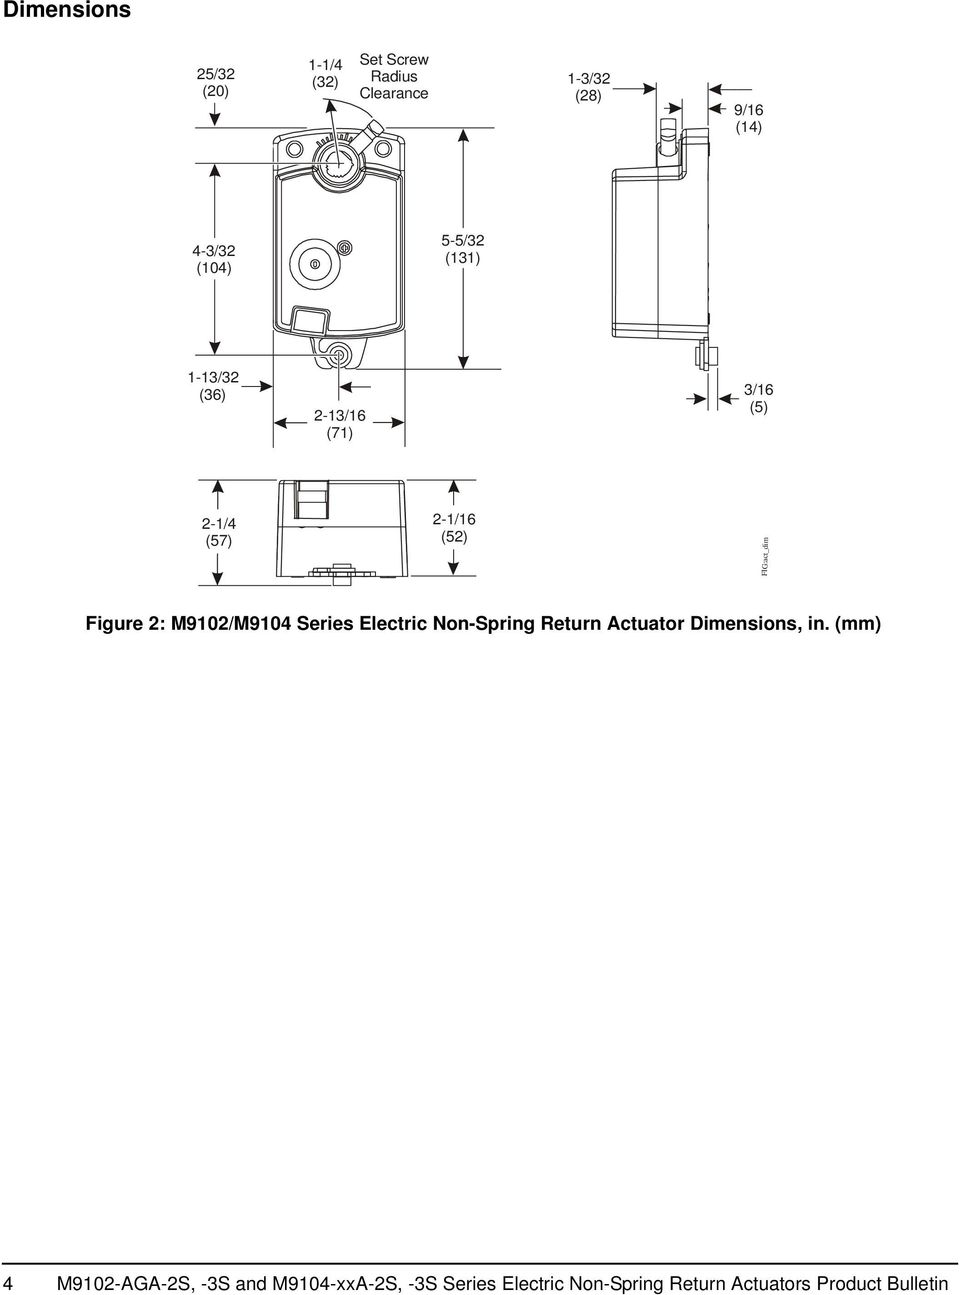 Figure 2: M9102/M9104 Series Electric Non-Spring Return Actuator Dimensions, in.